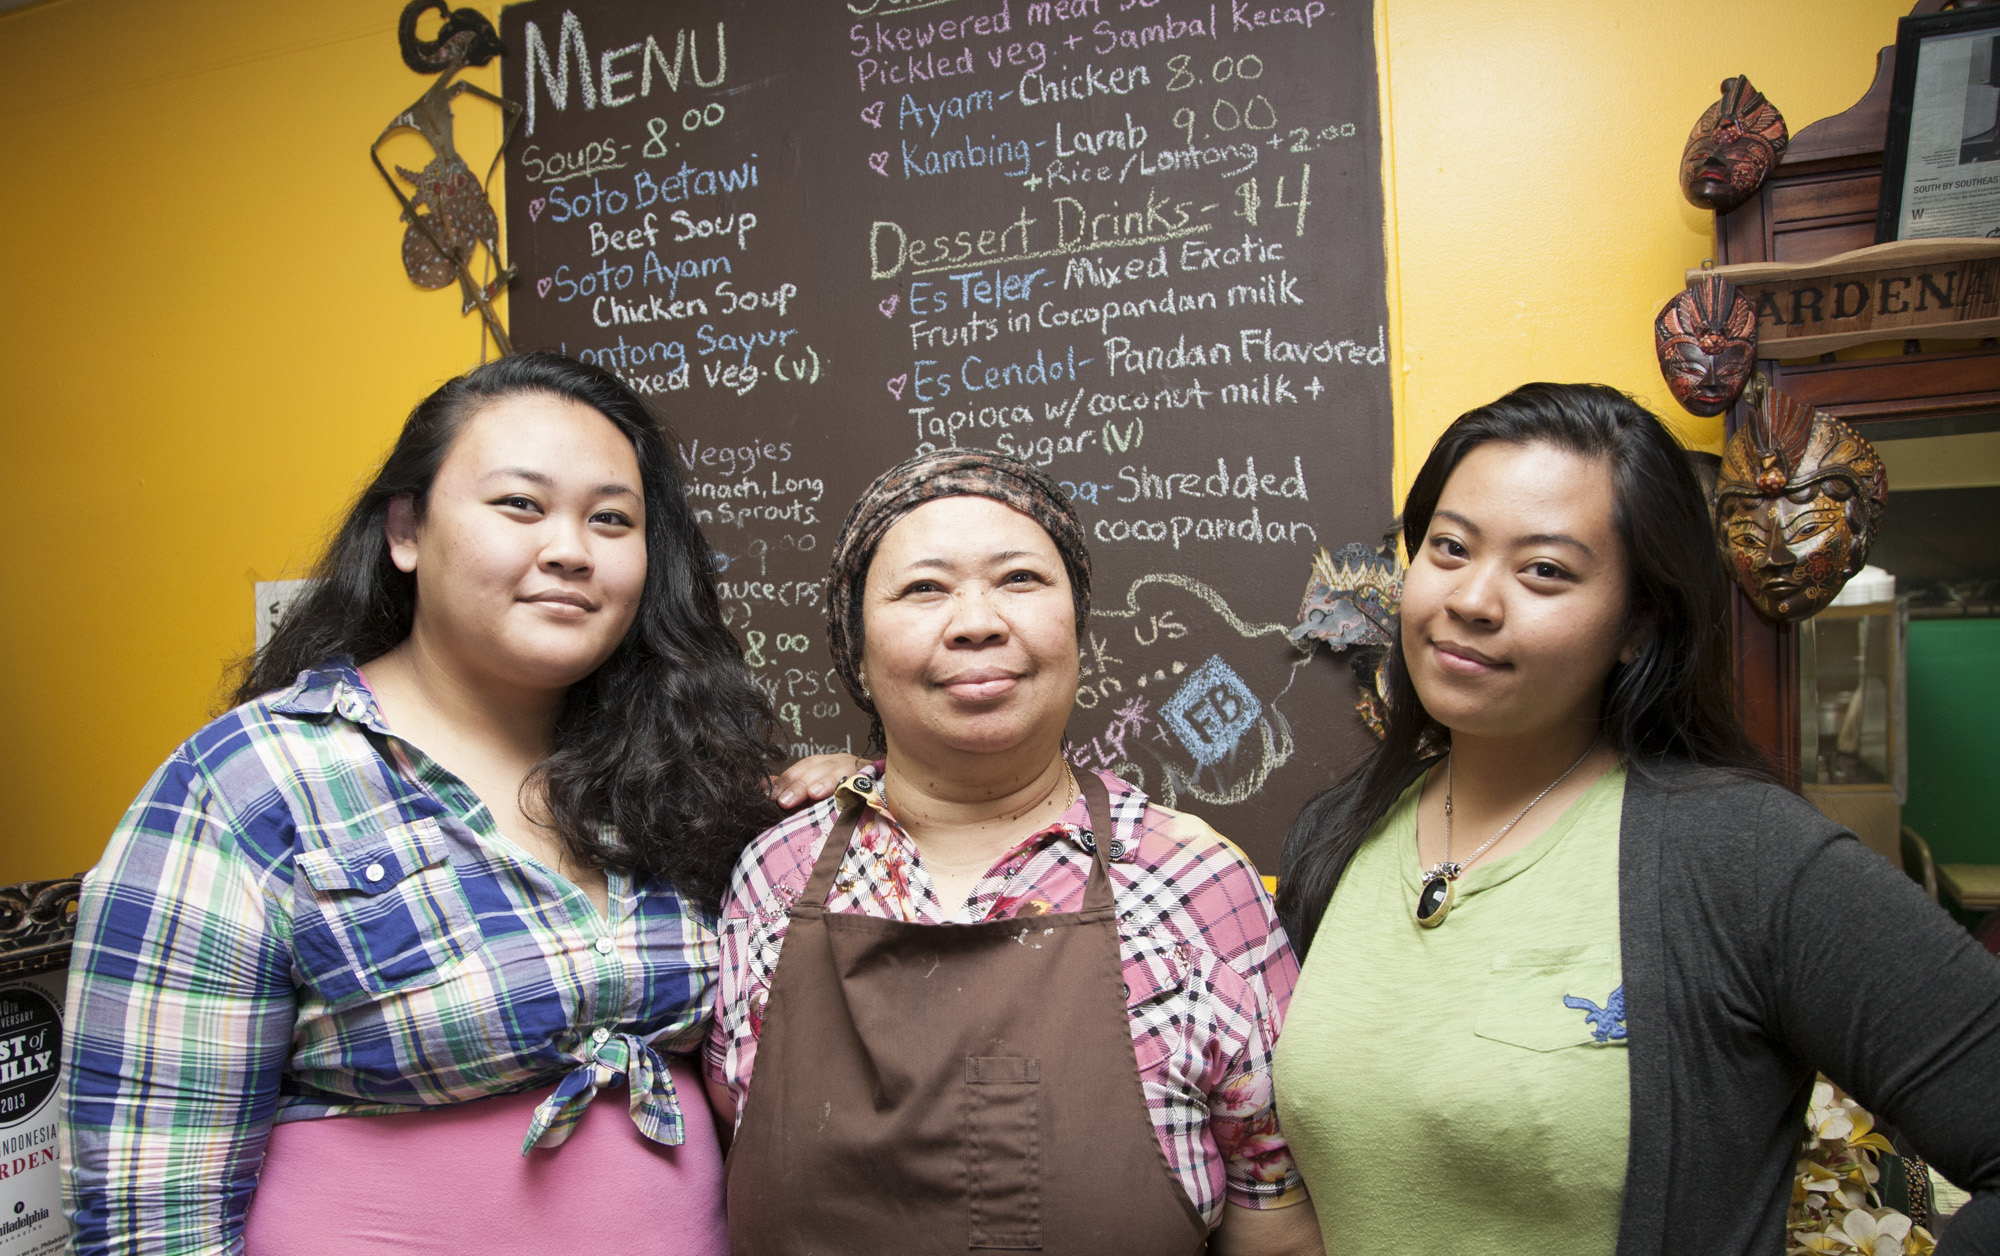 (Left to Right) Maylia, Ena, and Diana at Hardena restaurant on the 1600 block of Moore Street.